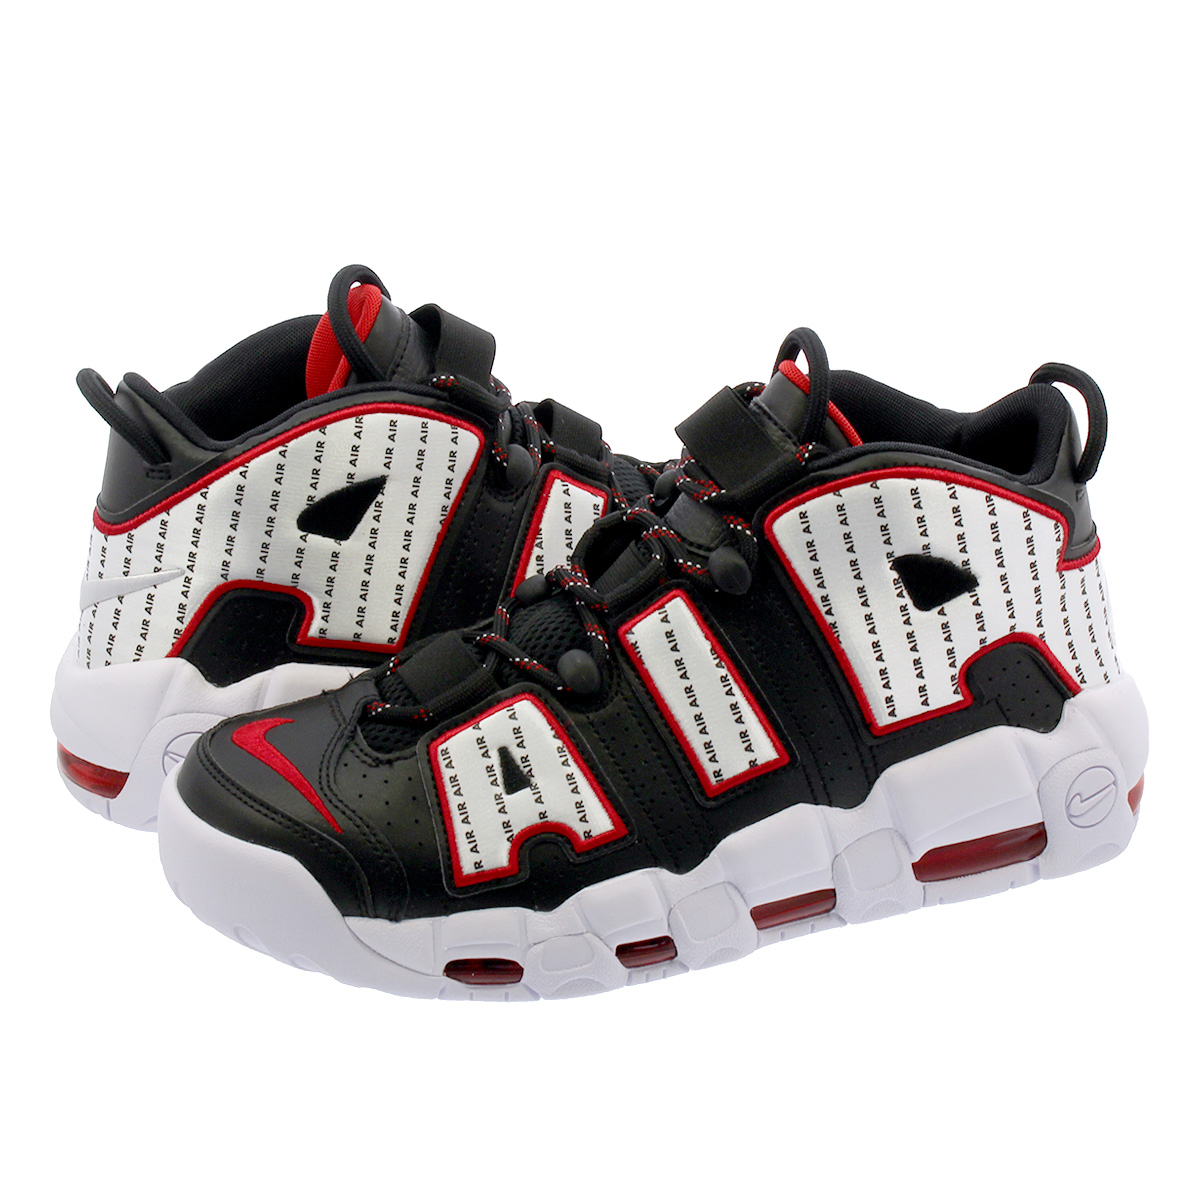 NIKE AIR MORE UPTEMPO 96 【PINSTRIPE】 ナイキ エア モア アップ テンポ 96 BLACK/WHITE/UNIVERSITY RED av7947-001